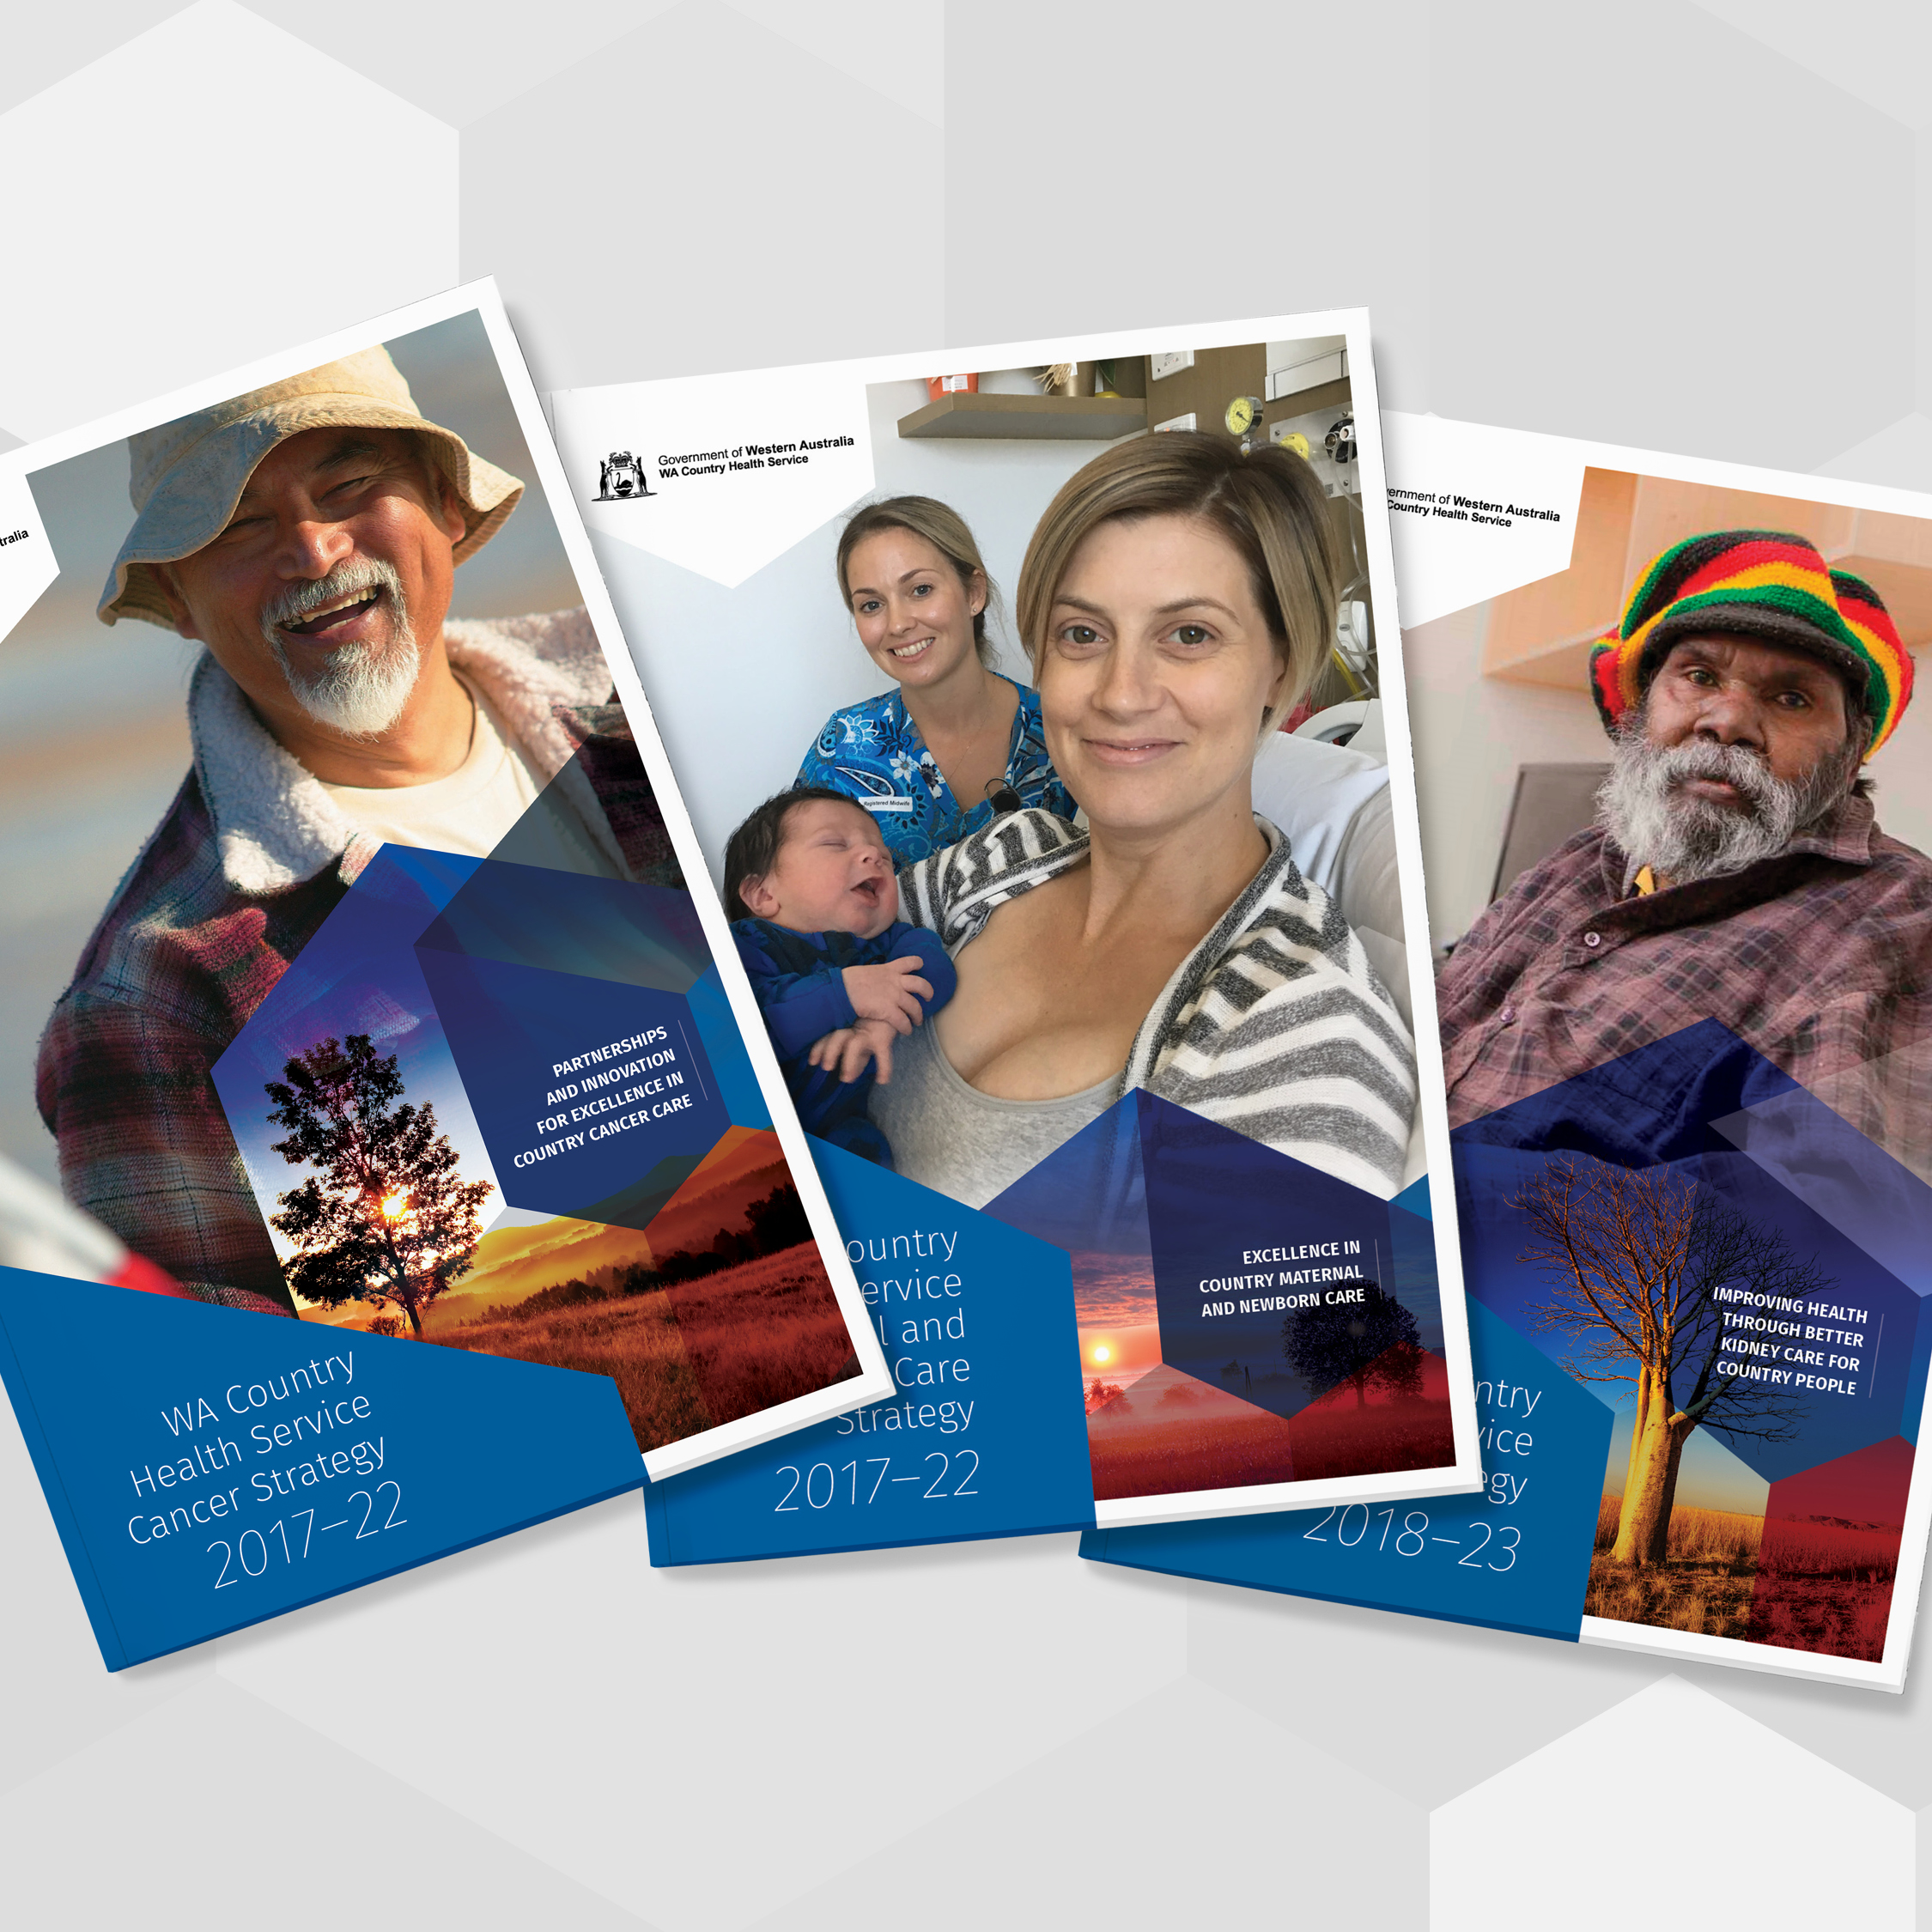 WA COUNTRY HEALTH SERVICE STRATEGY DOCUMENTS